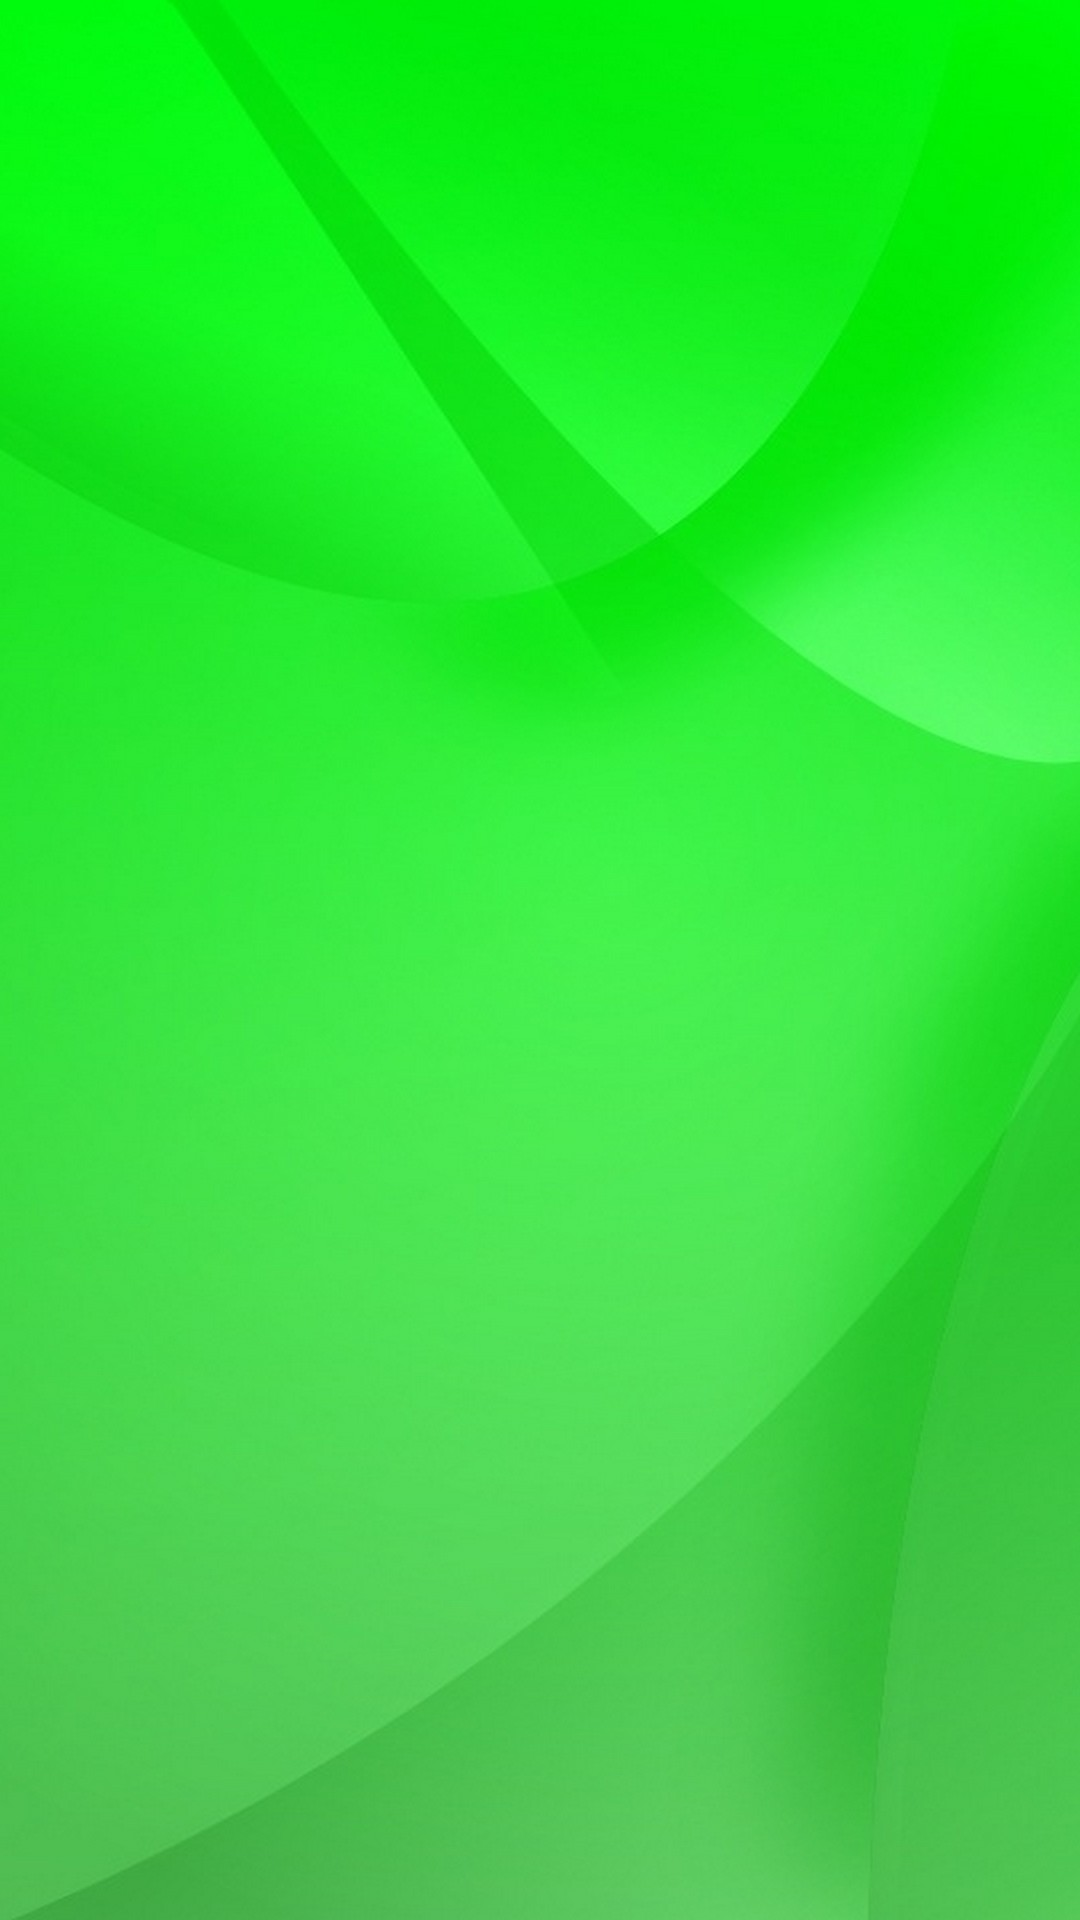 Android Wallpaper Light Green 2020 Android Wallpapers